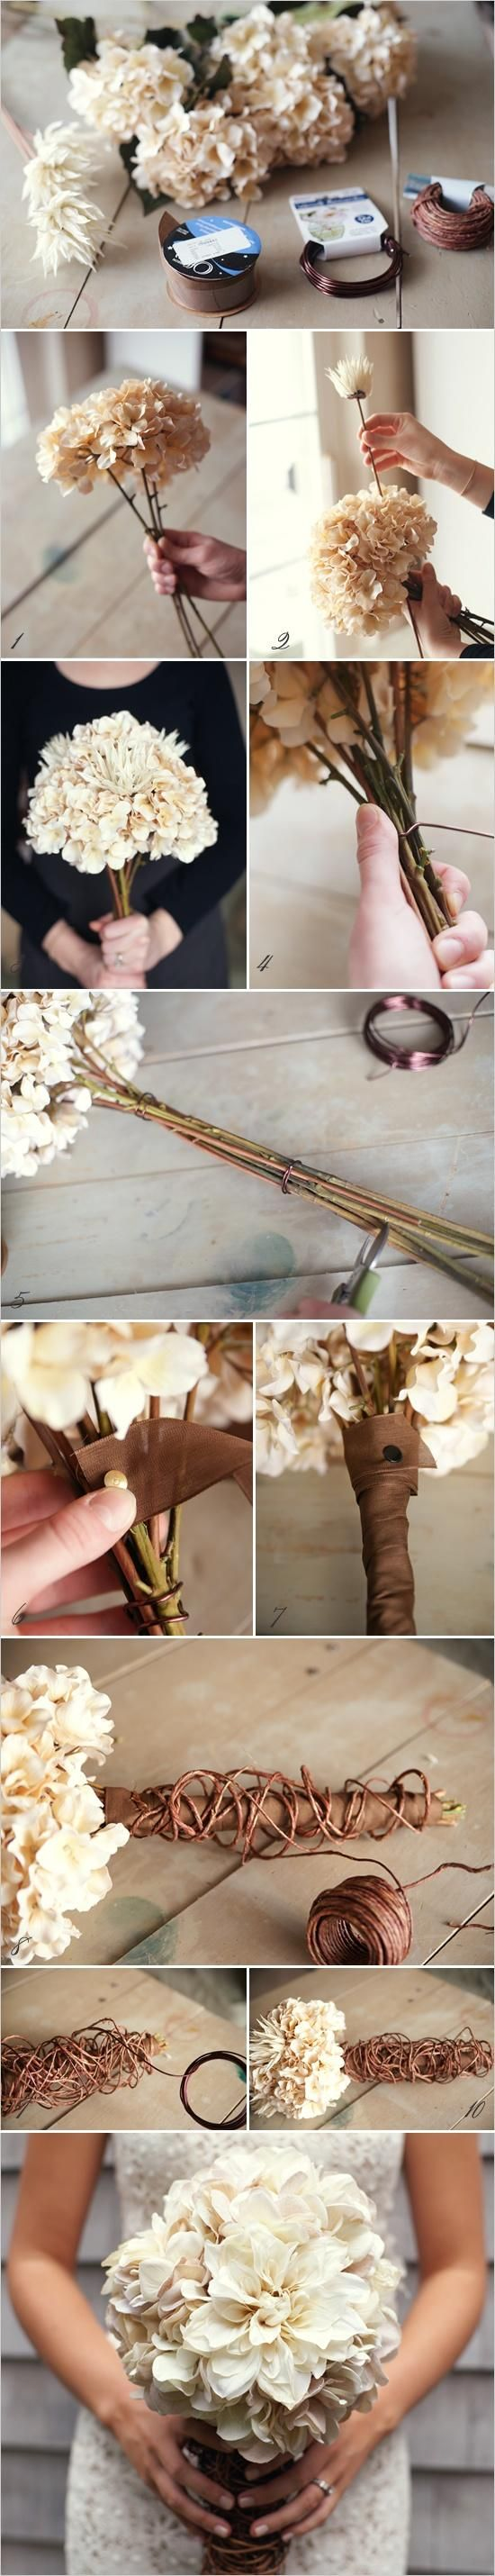 DIY Bridal Bouquets : DIY Wedding